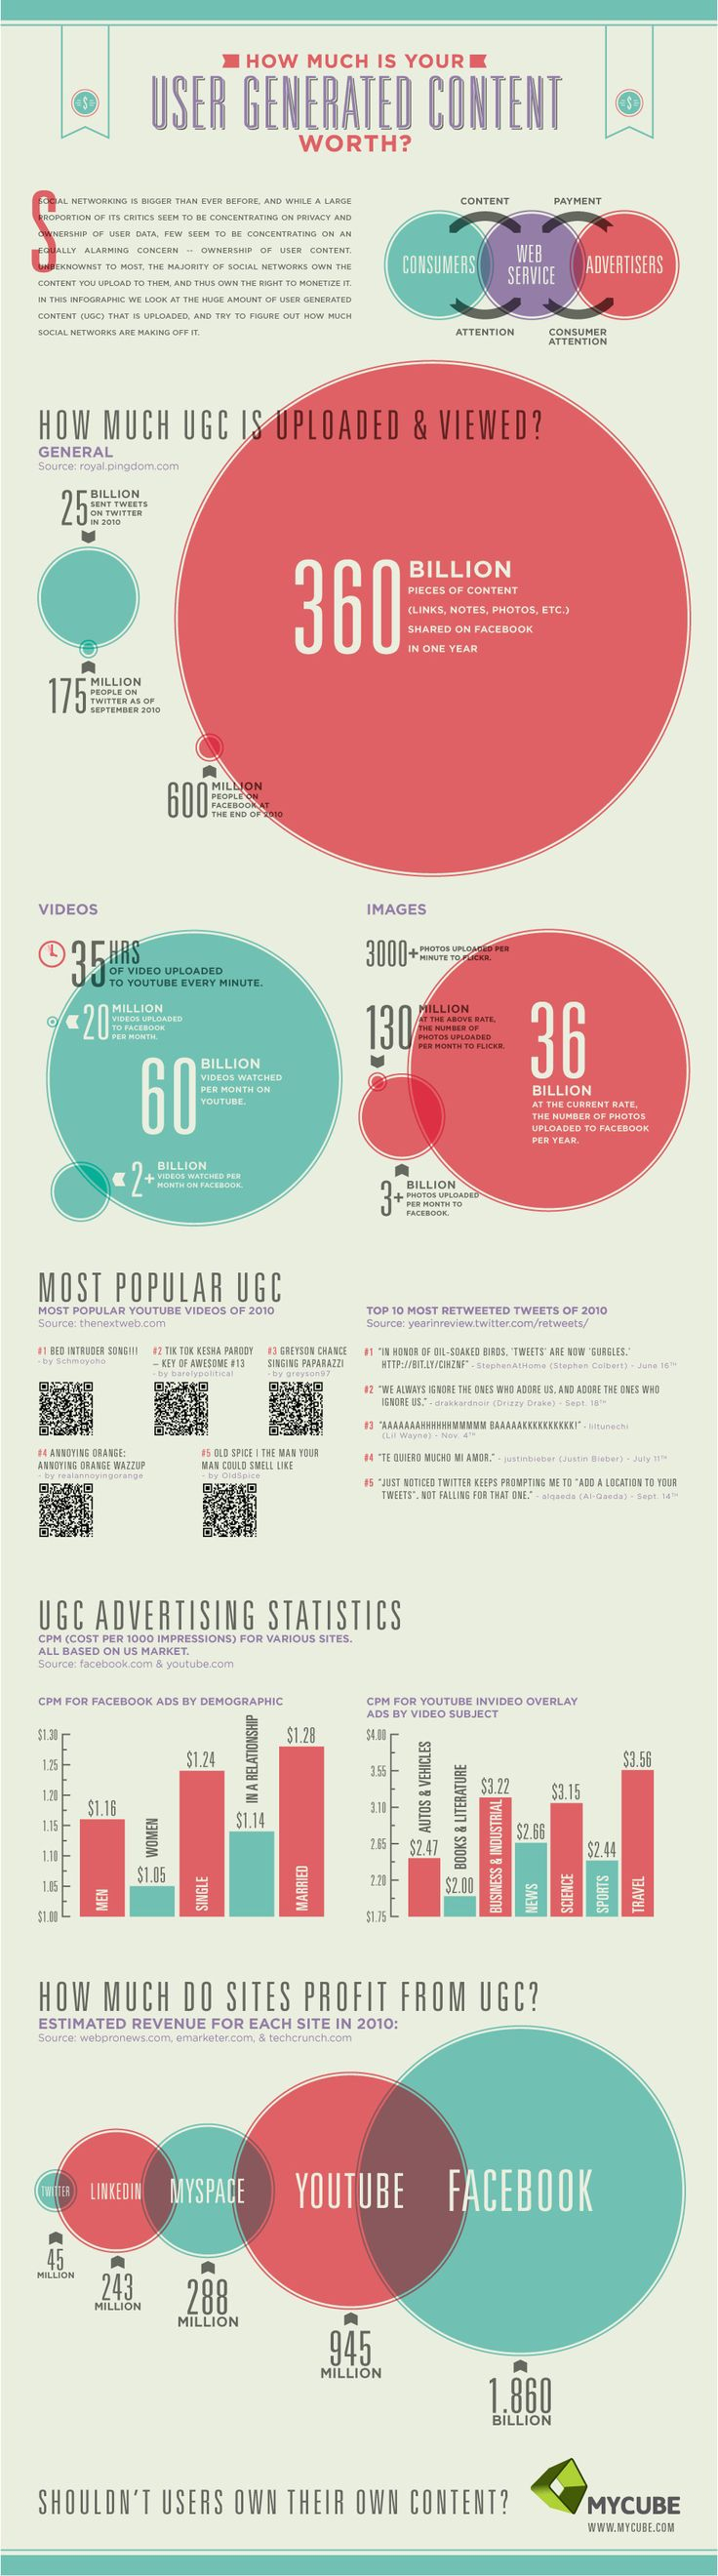 How much money are social networks making from your UGC (User Generated Content)? as always there a nice inforgraphic to help us out!